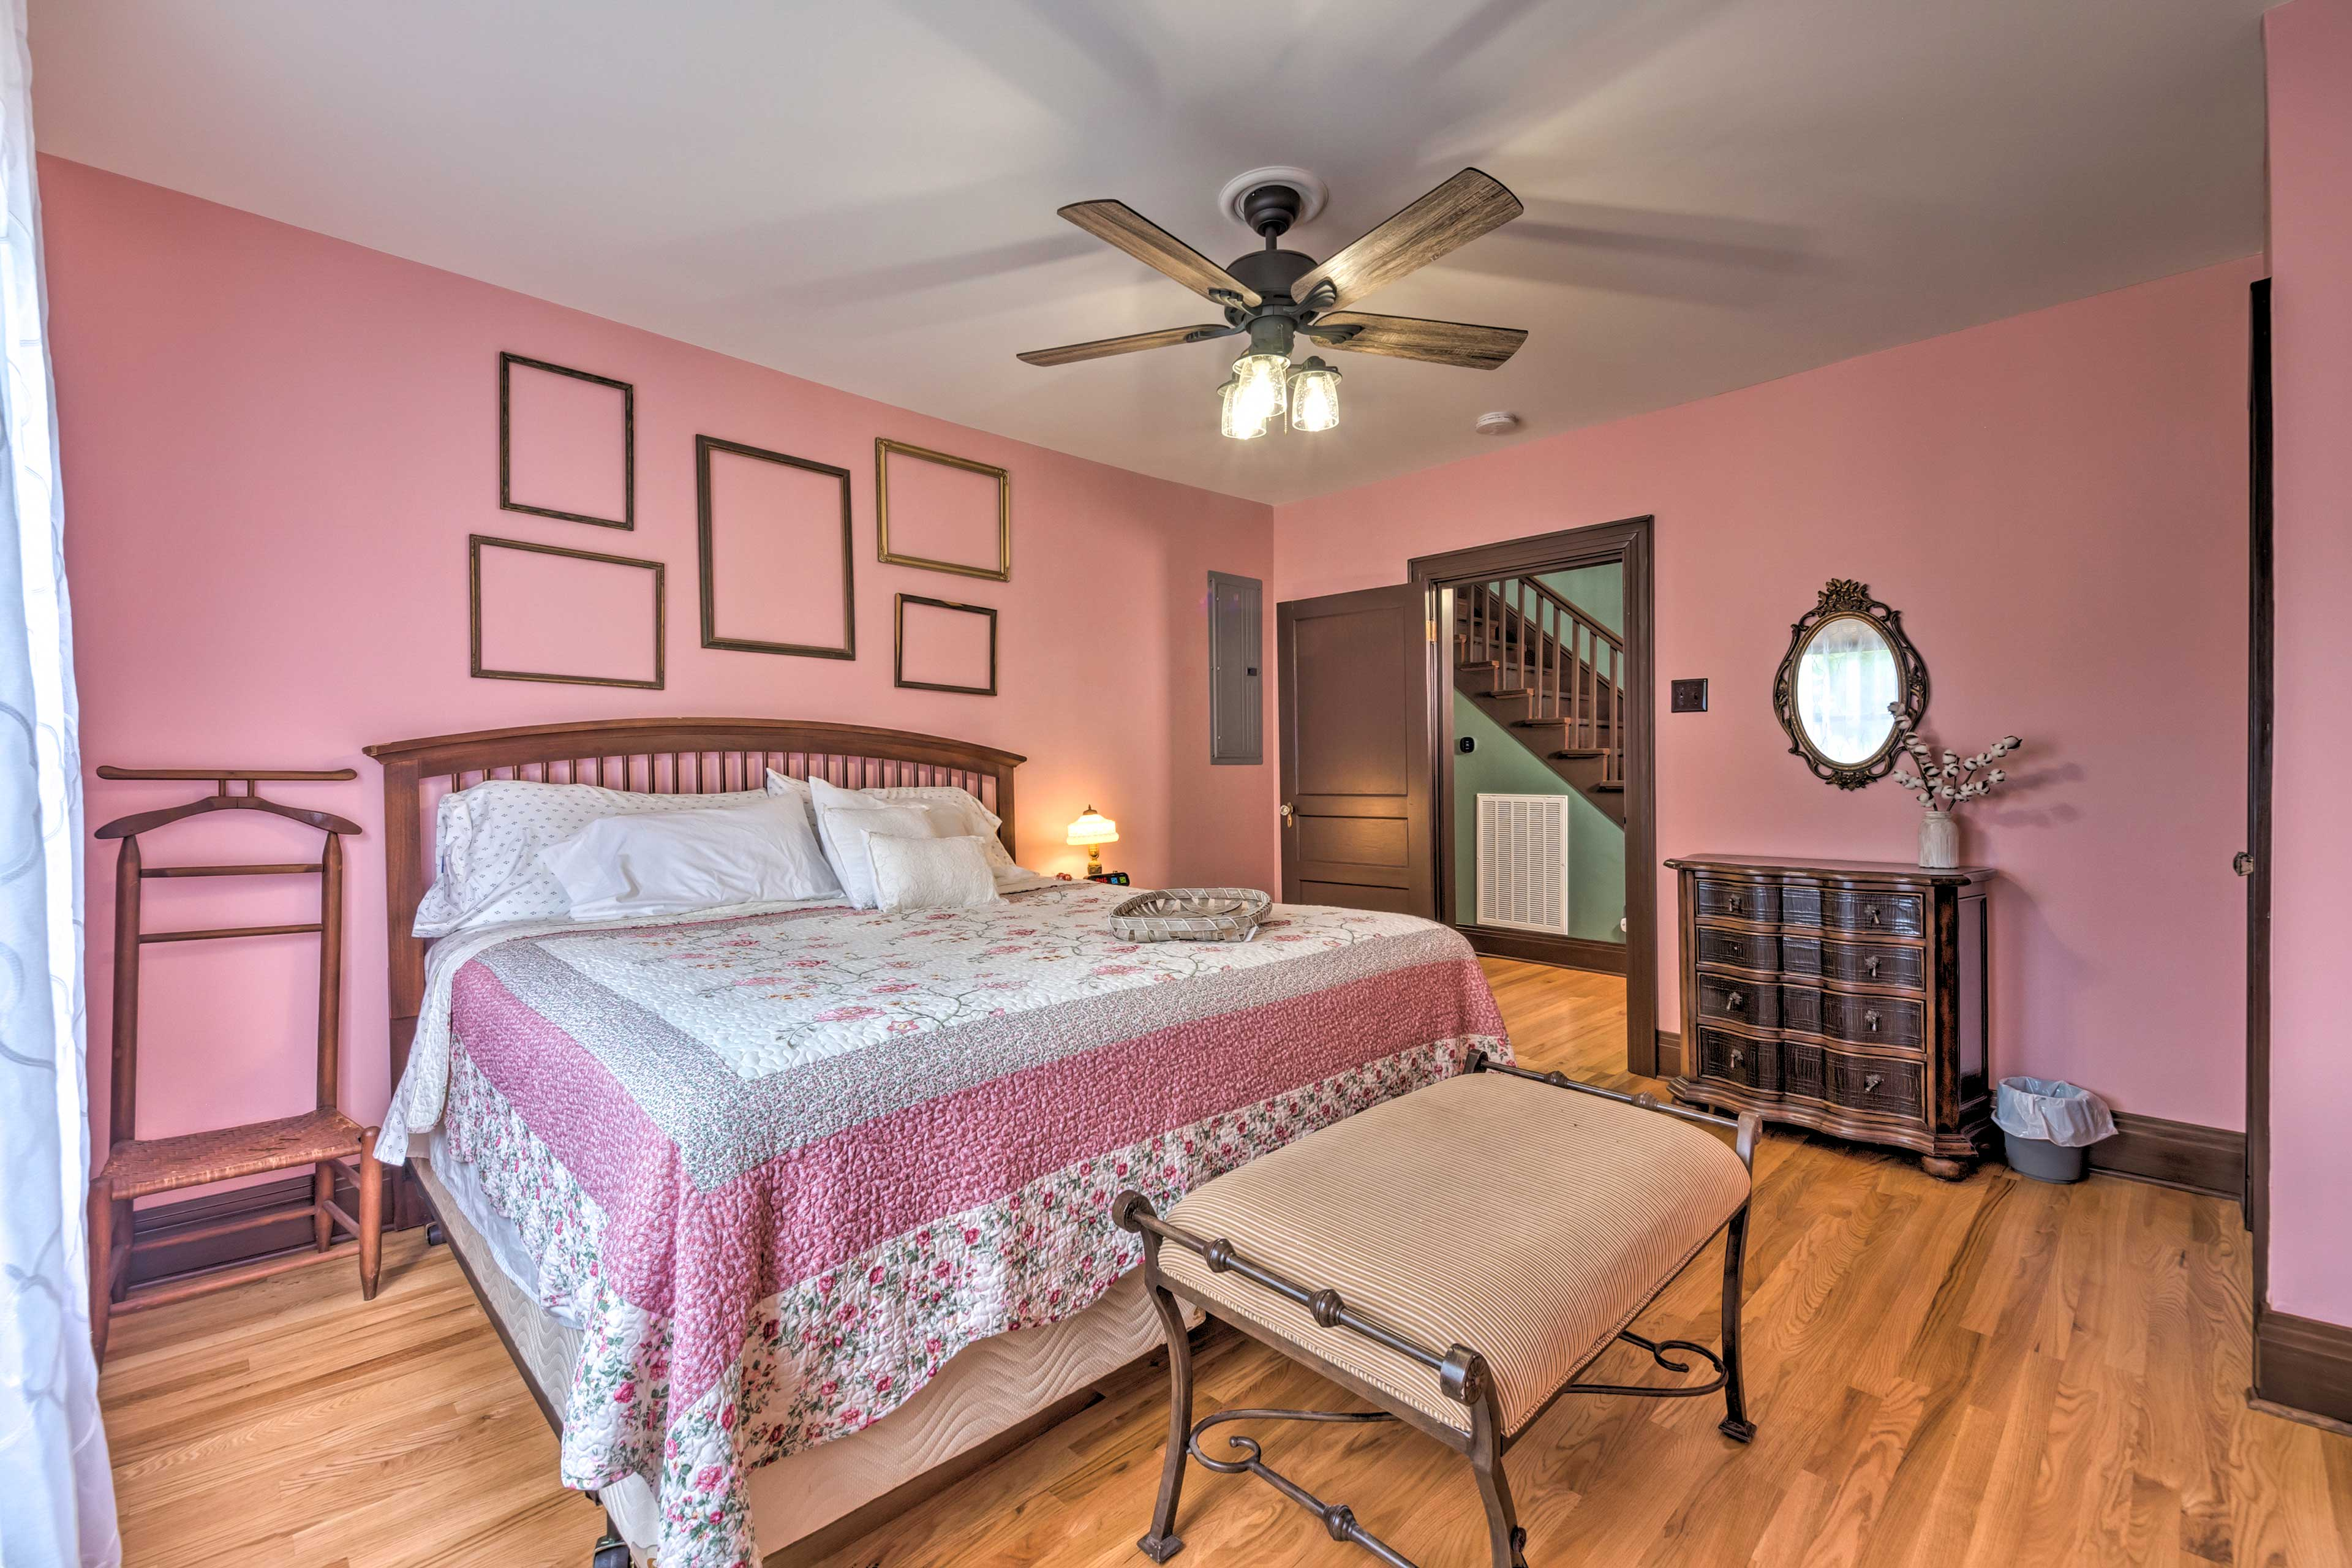 End each day curled up in this king be in the master bedroom!